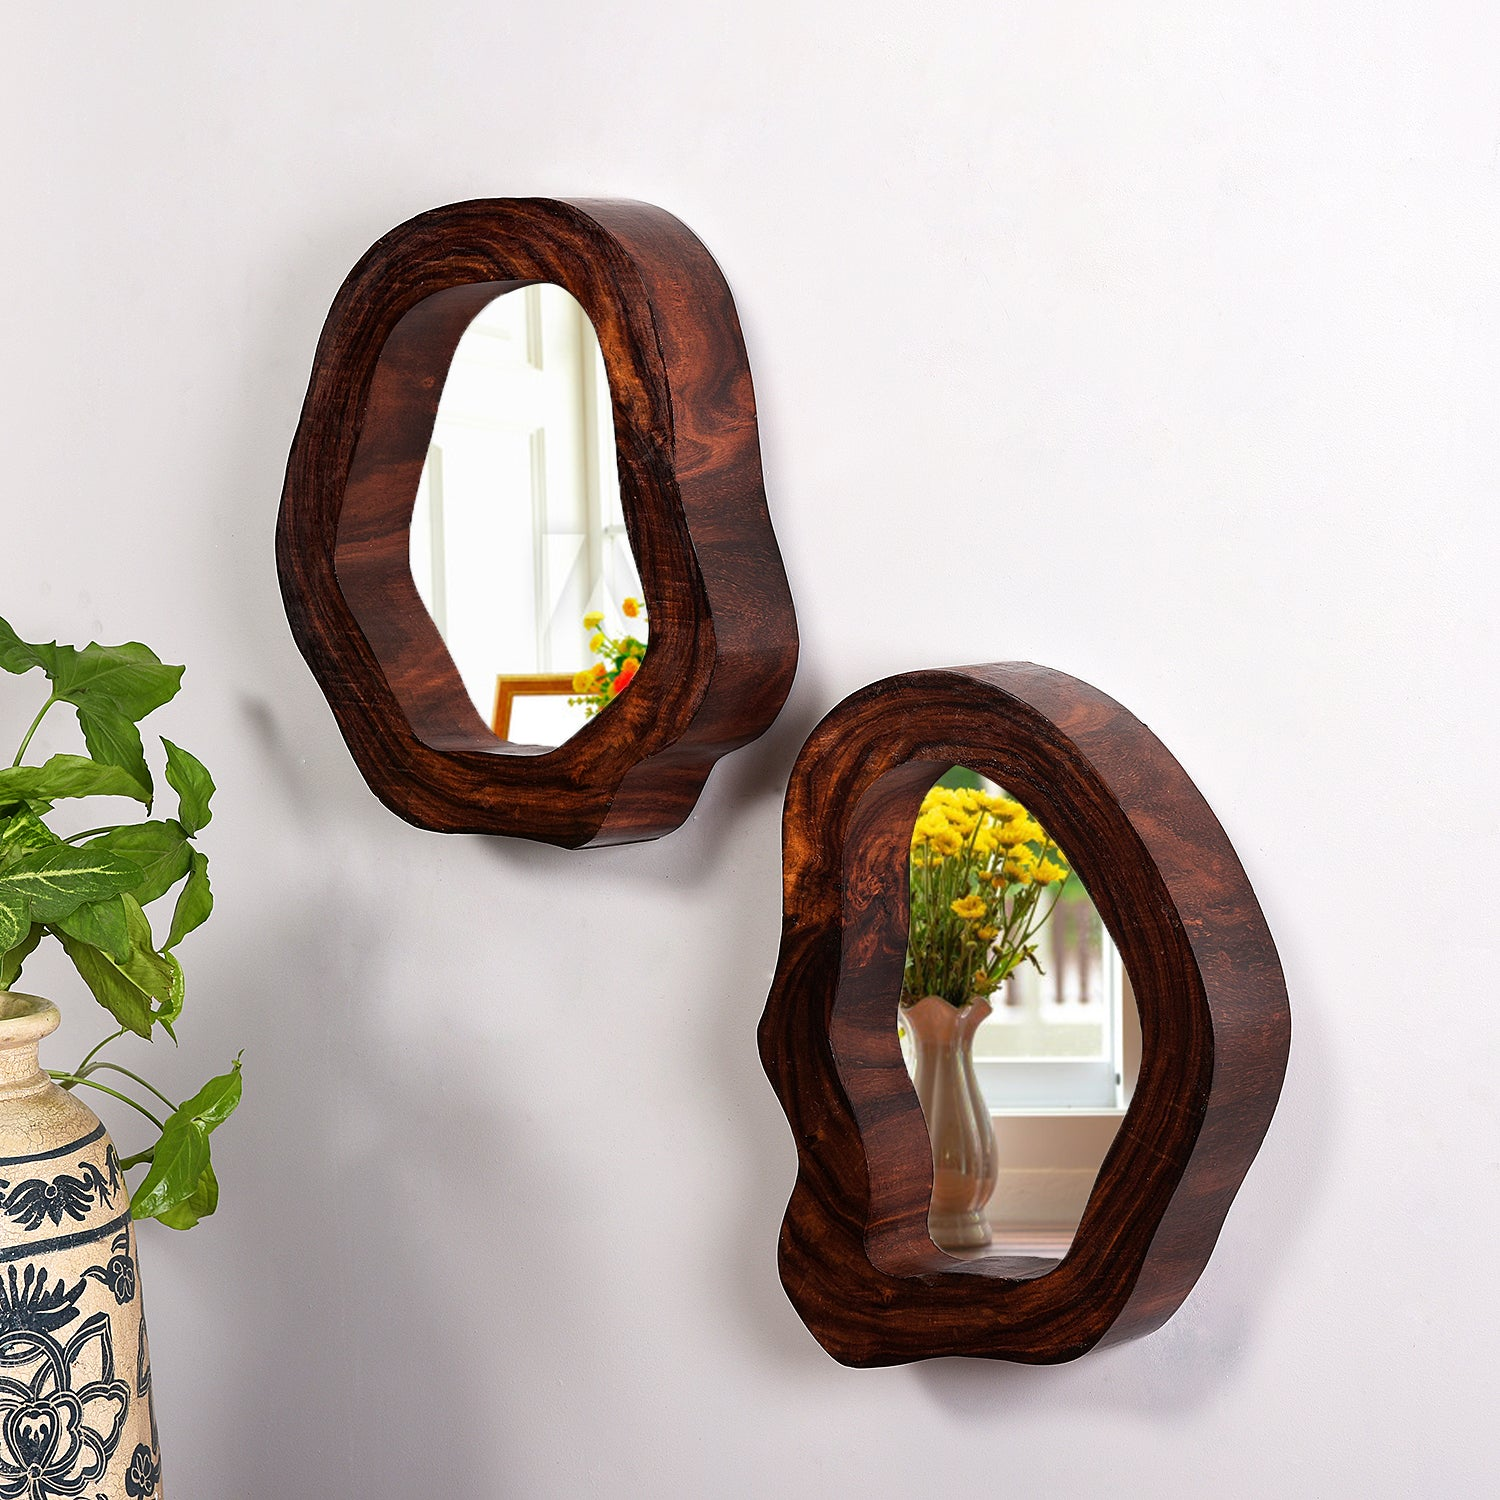 Tree Hollow Mirrors (set of 2)